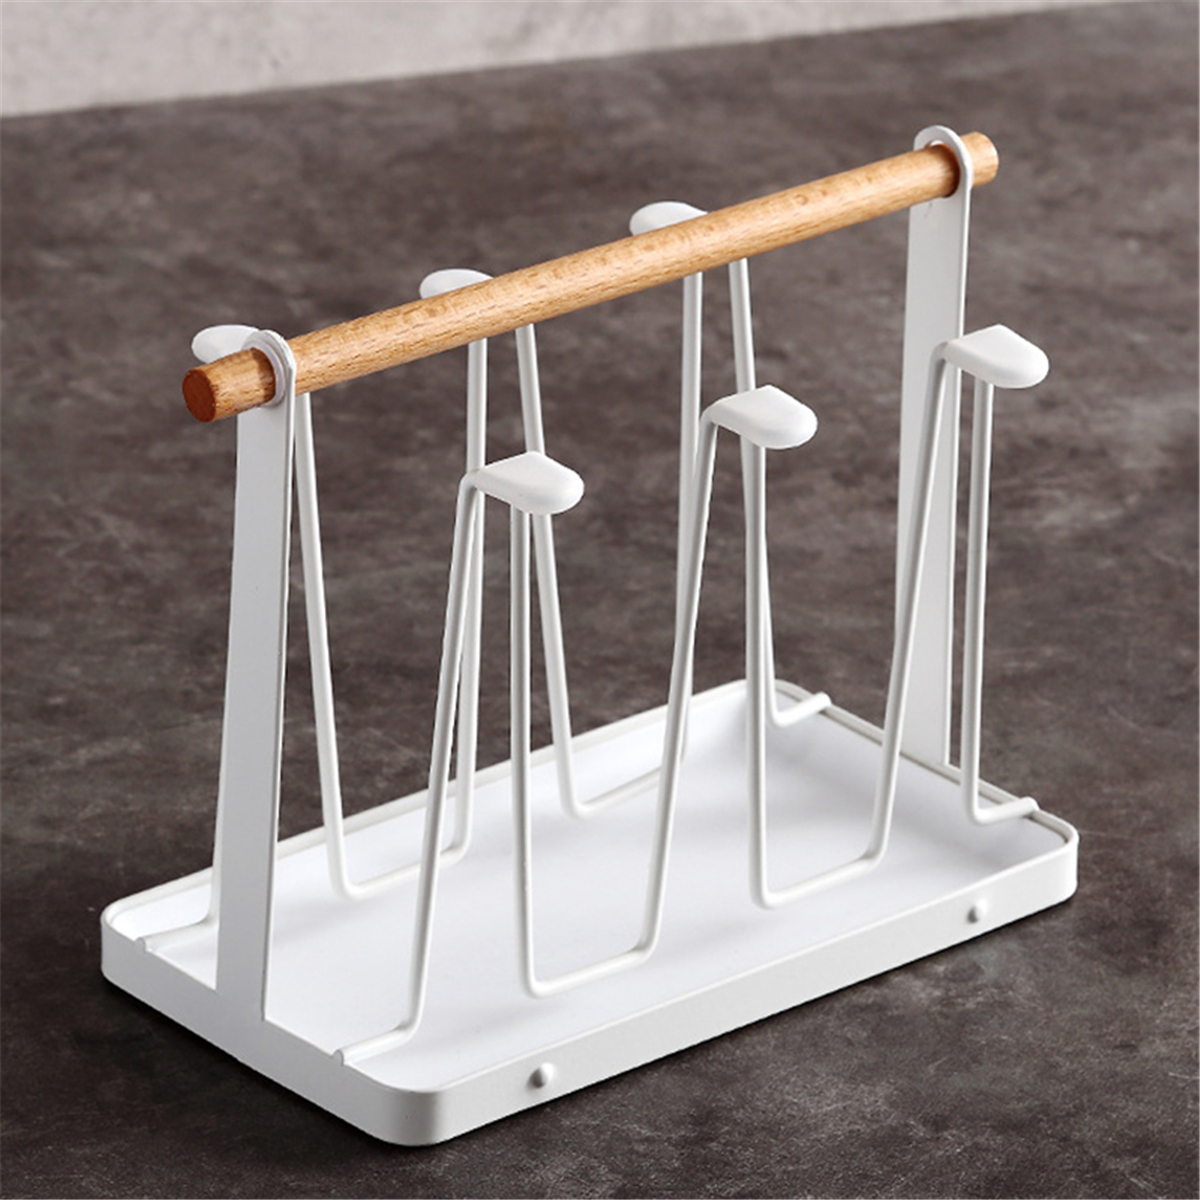 Wrought Iron Upside down Drain Japanese Style Cup Holder Water Cup Mug Storage Rack Drain Rack